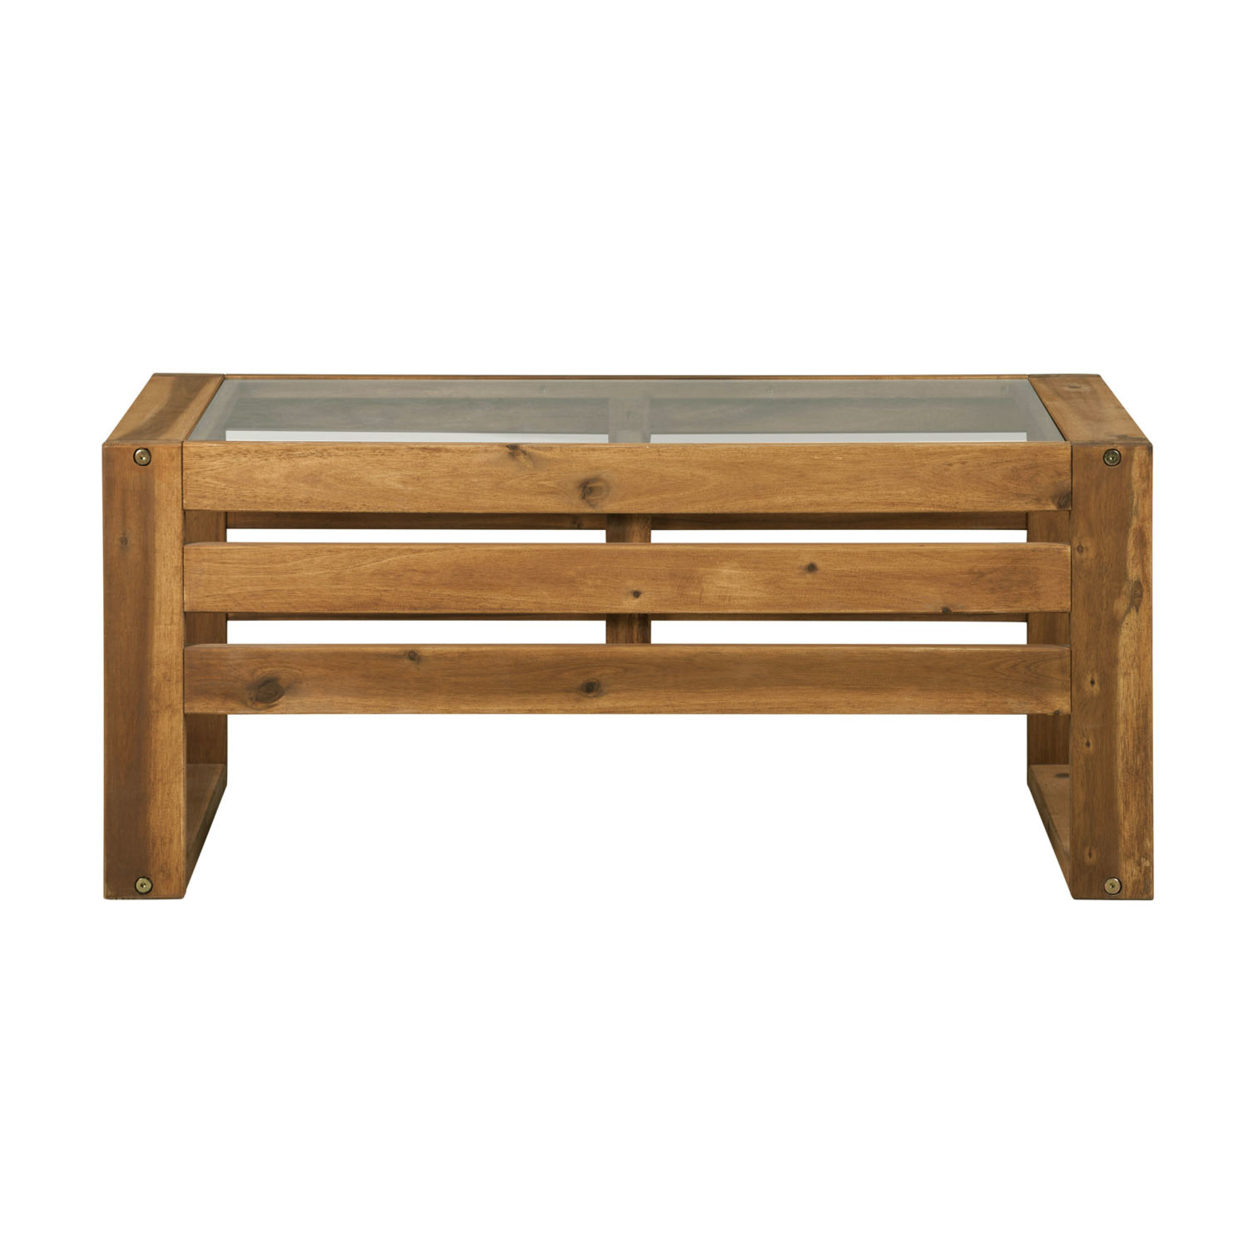 WE Furniture Open Side Wood Coffee Table - Brown стоимость